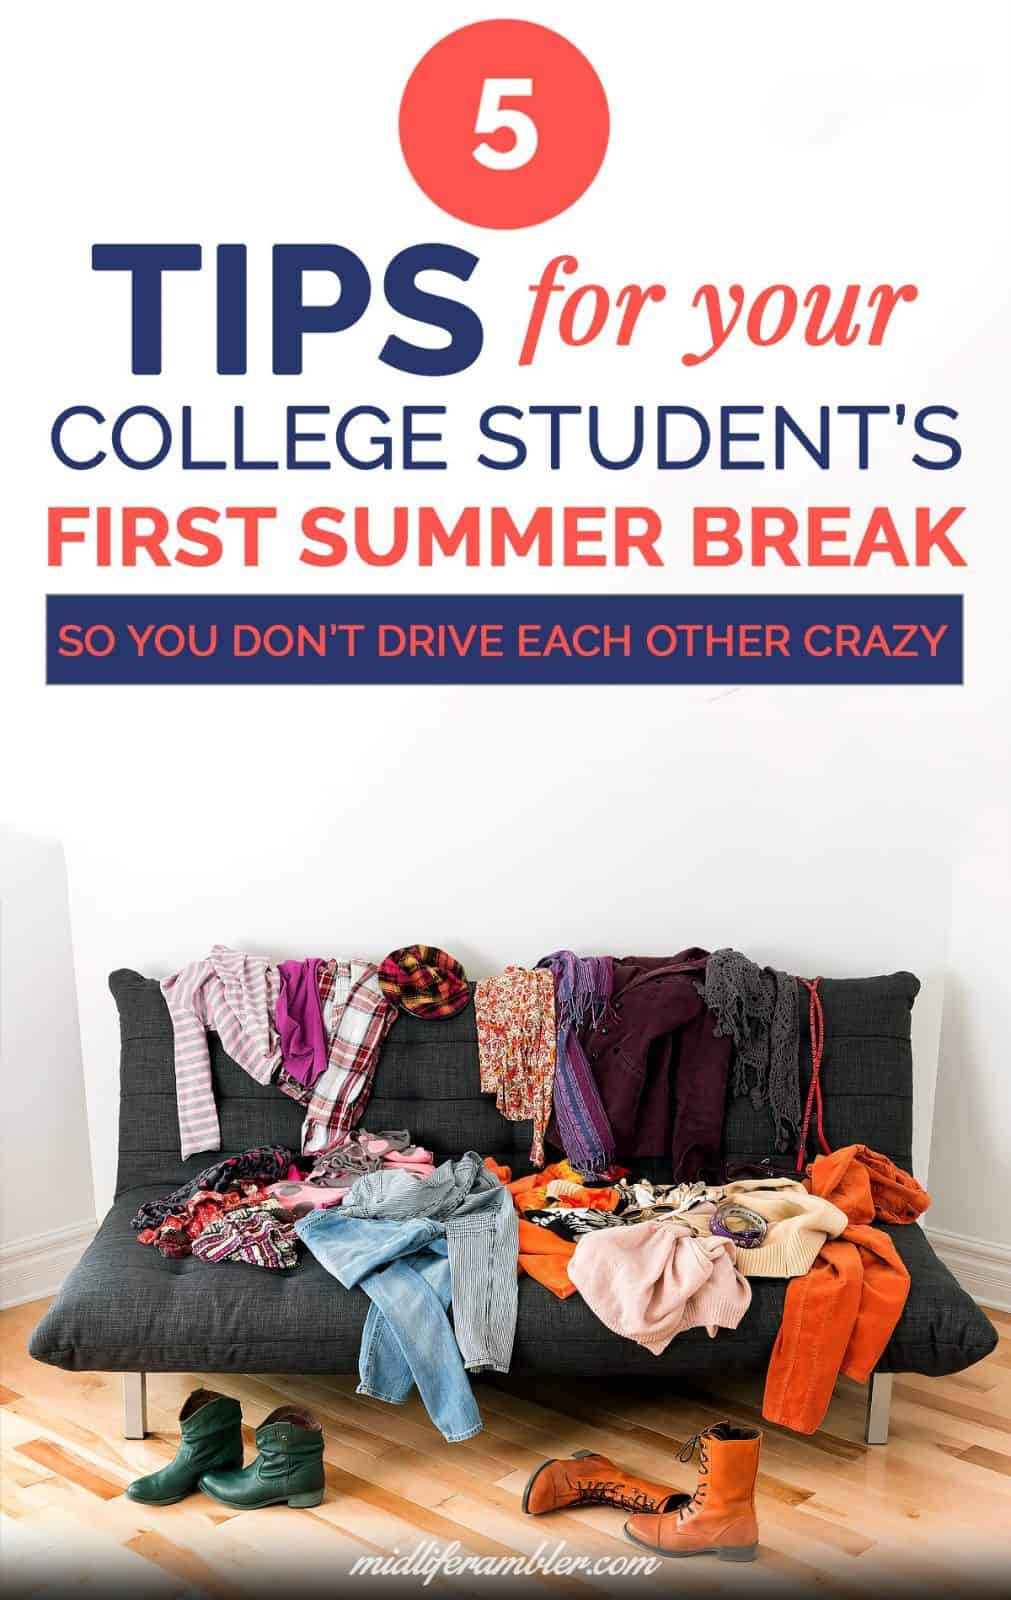 5 Tips for Your College Student's First Summer Break 2